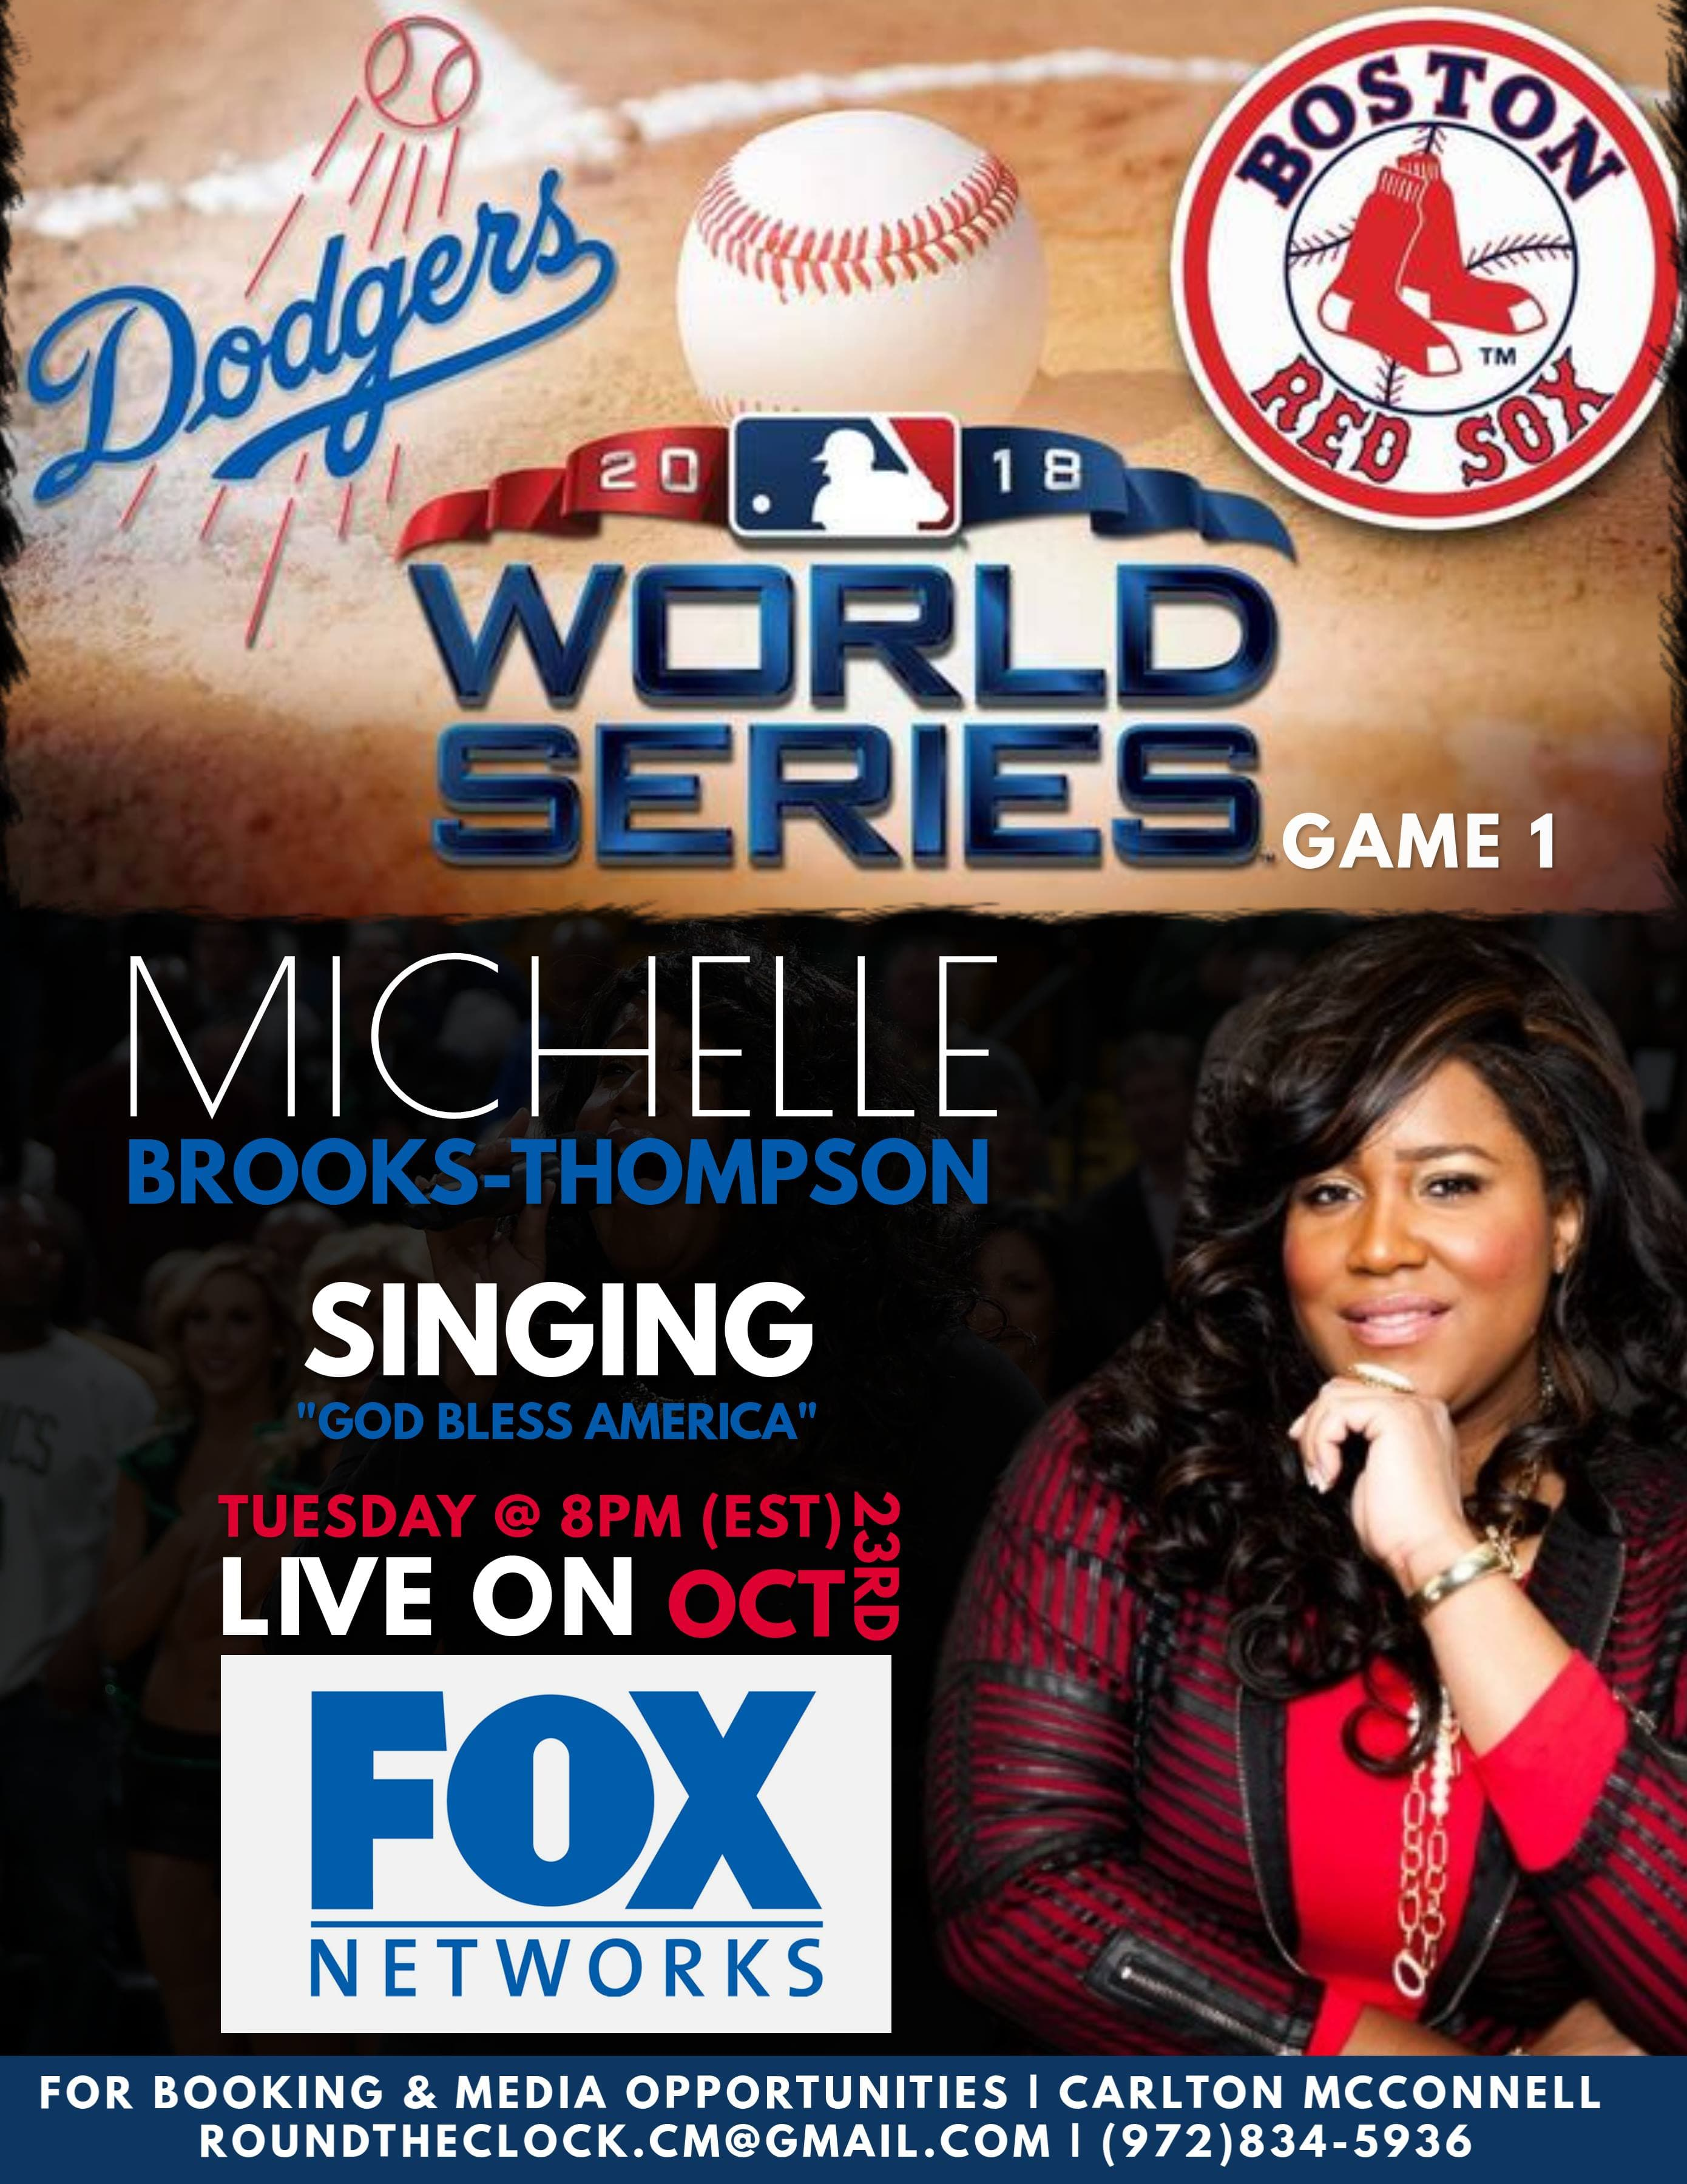 Michelle Brooks-Thompson to Perform During Game 1 of the World Series